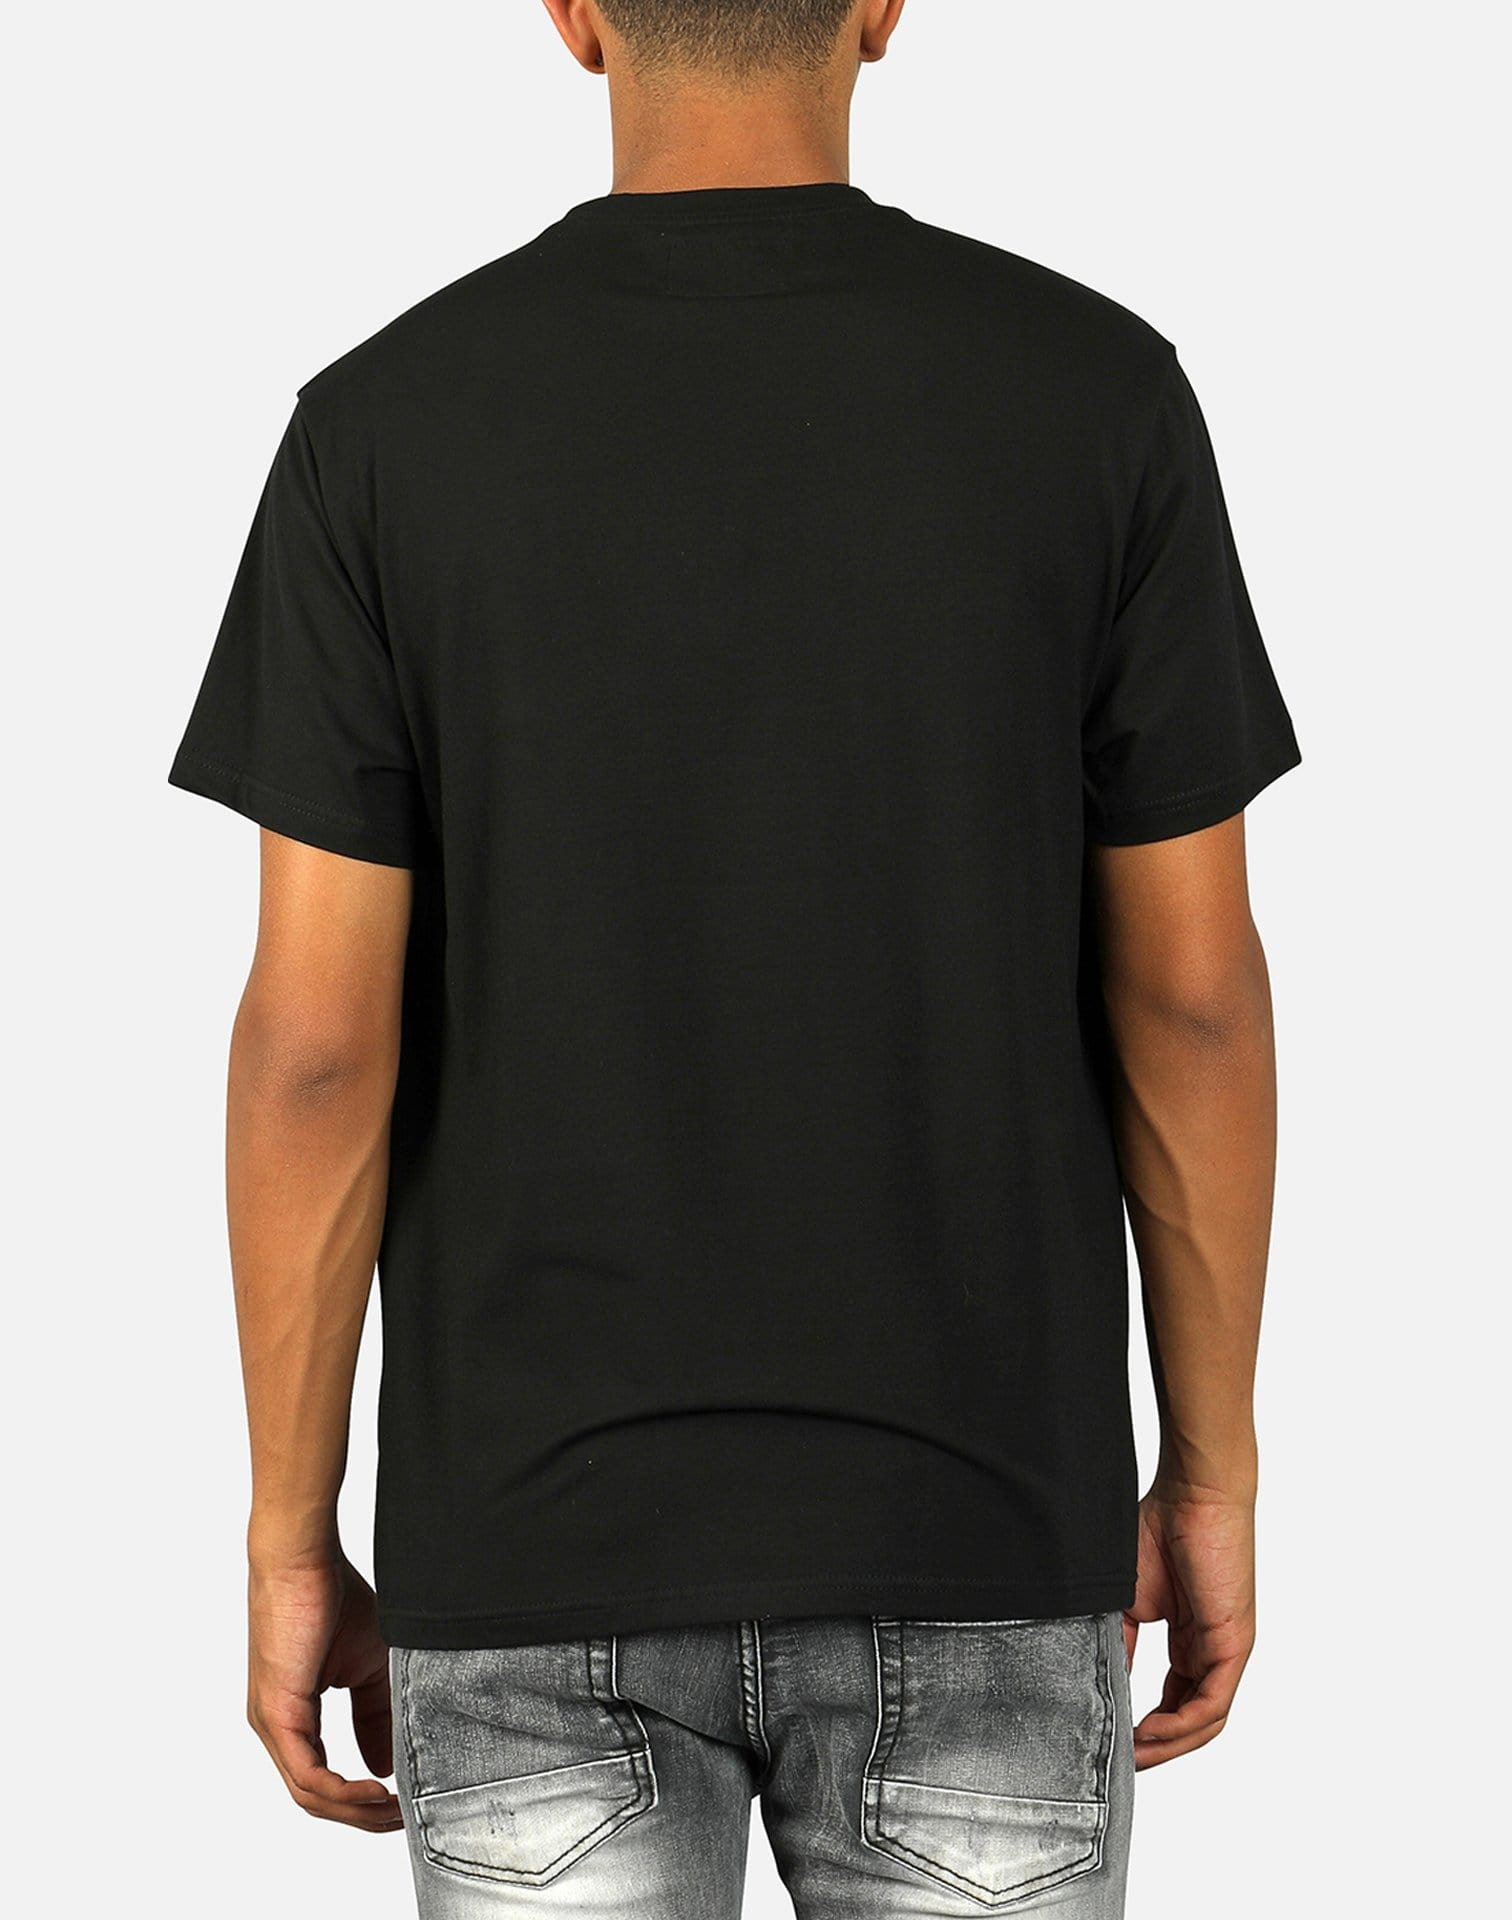 K and S Men's Expensive Taste Tee